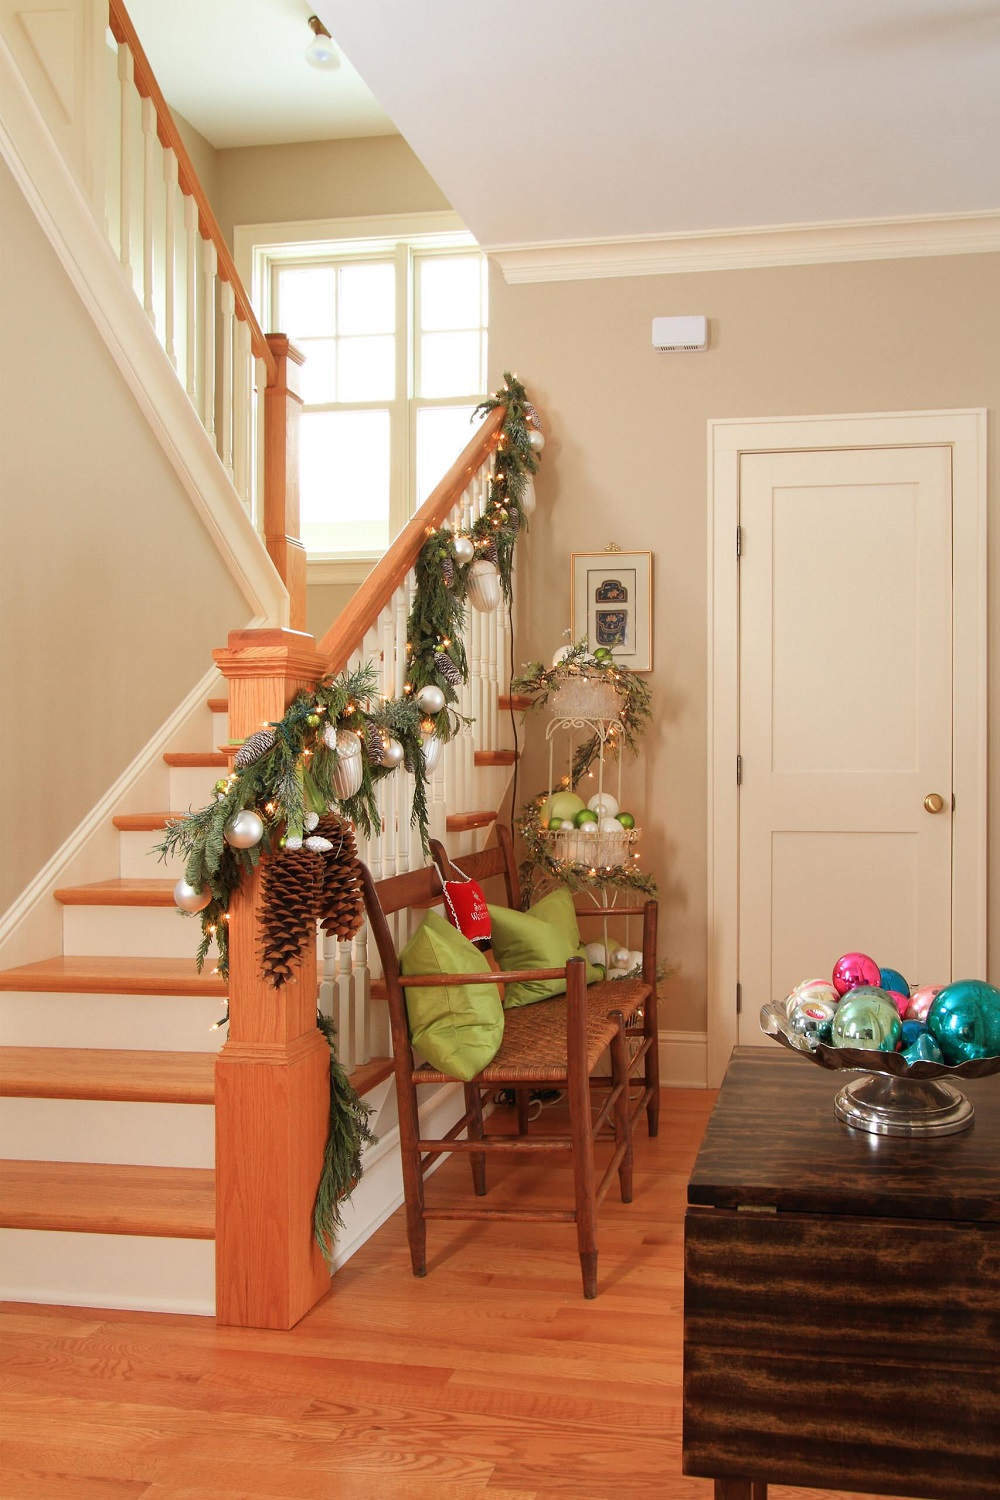 t3-158 Great decoration ideas for Christmas stairs that you should definitely try